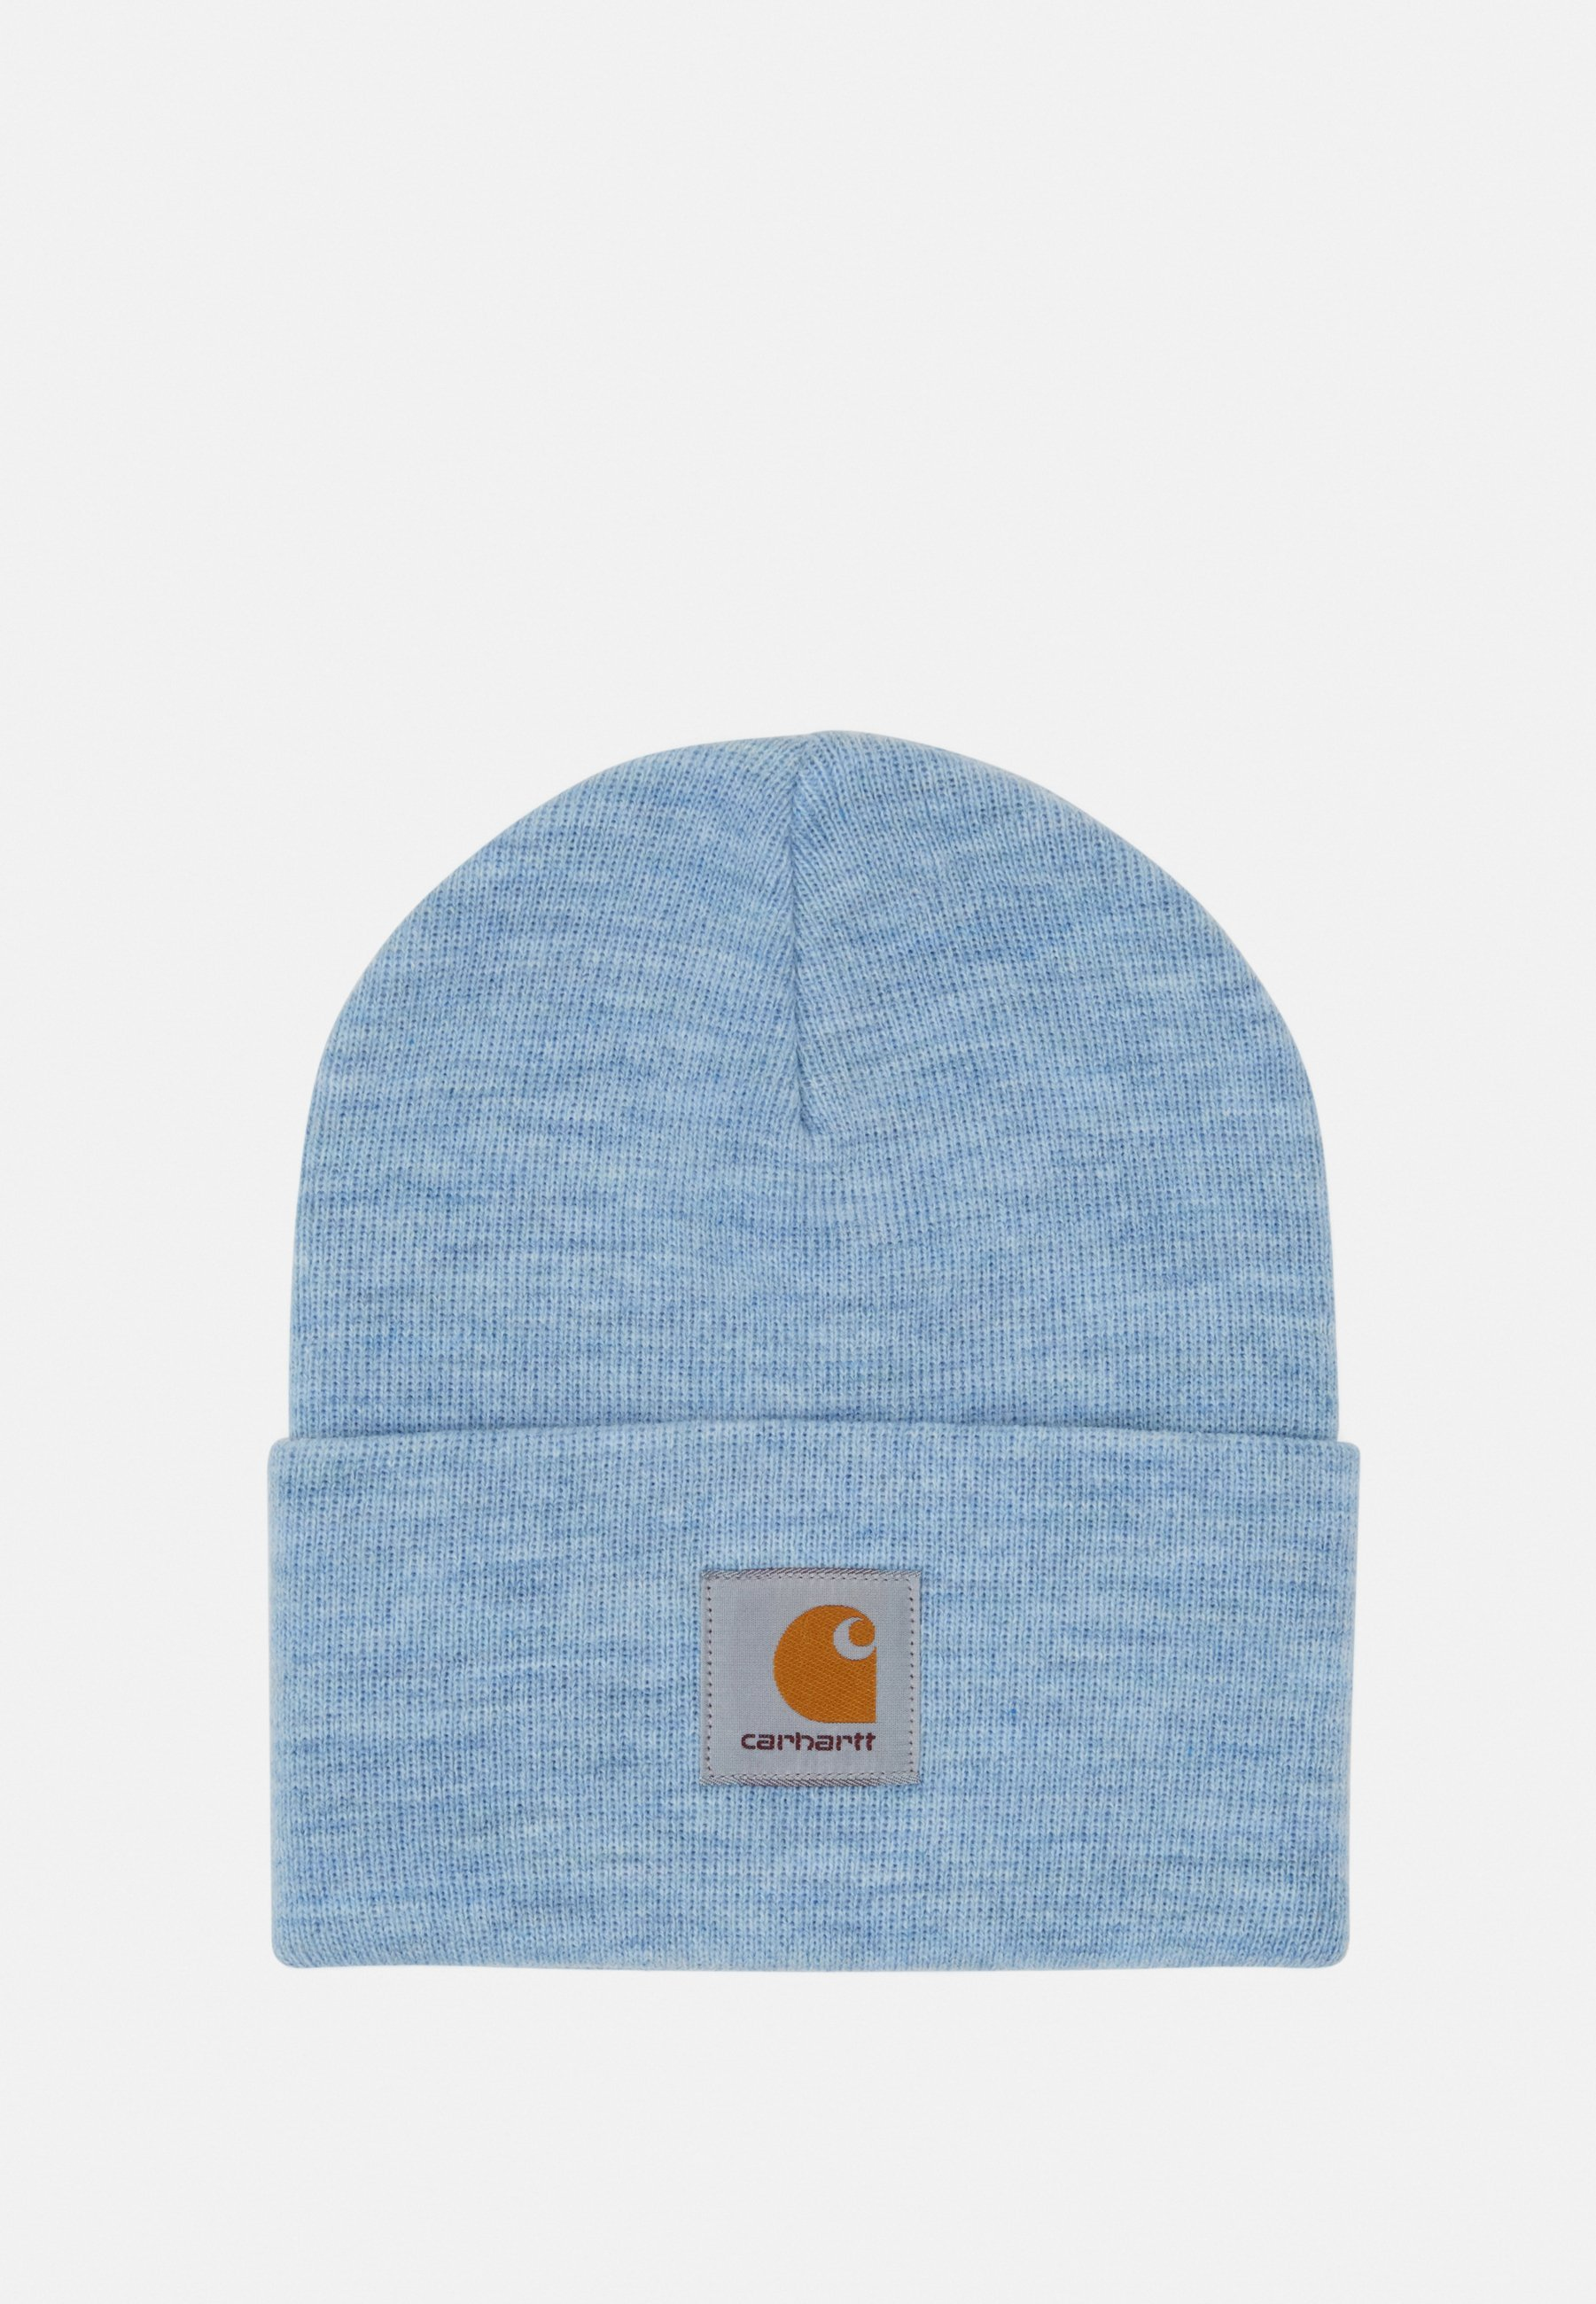 Carhartt Wip Watch Hat - Mütze Frosted Blue Heather/hellblau